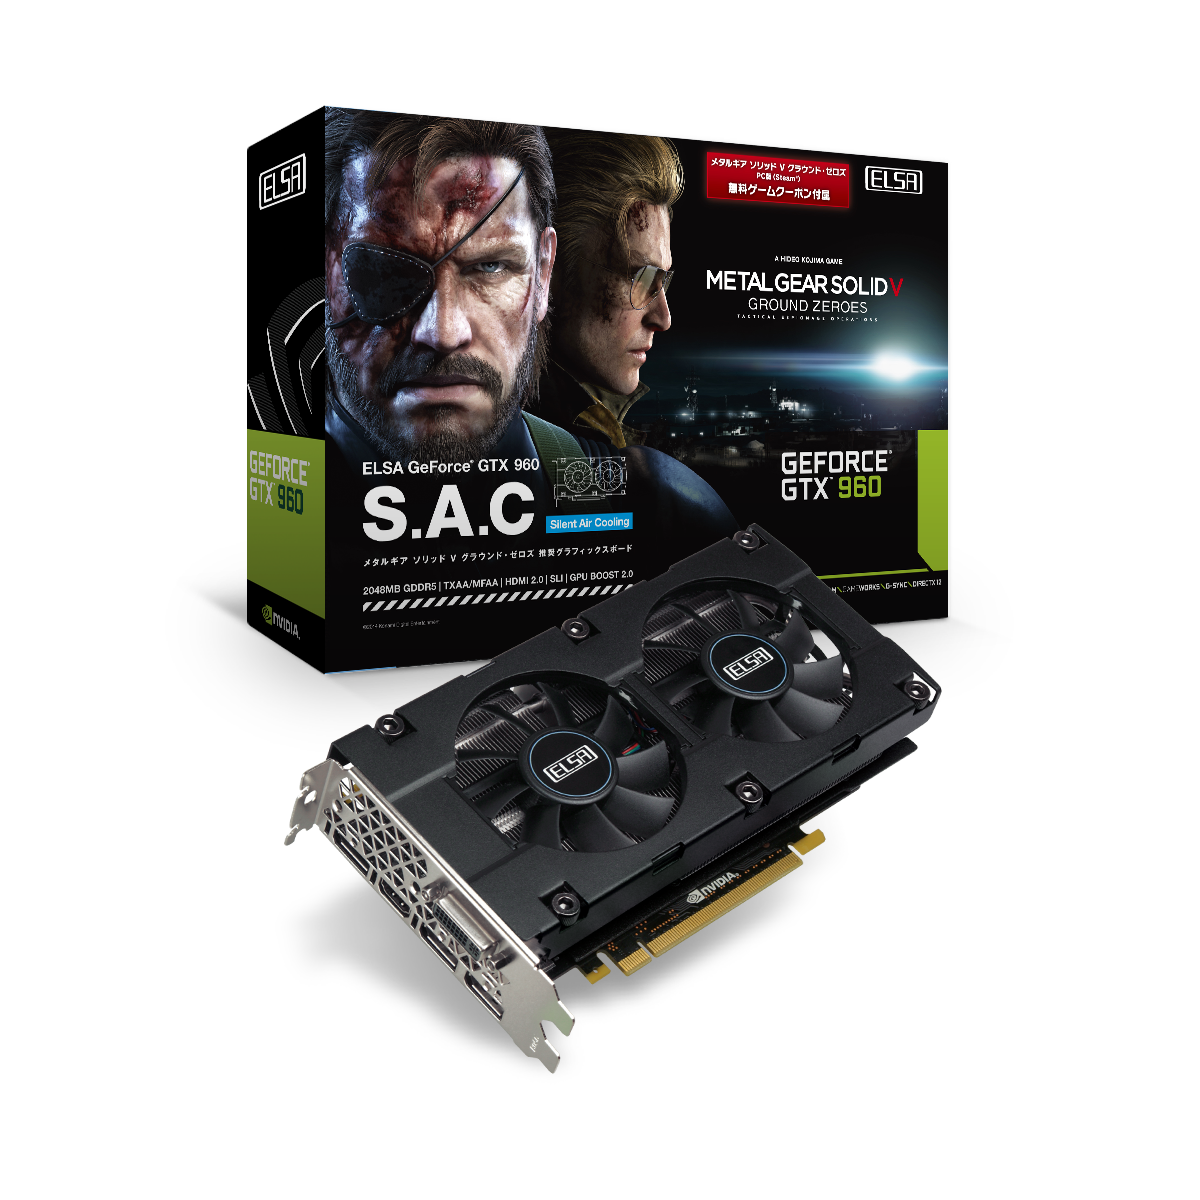 elsa_geforce_gtx_960_2gb_sac_mg_box_card